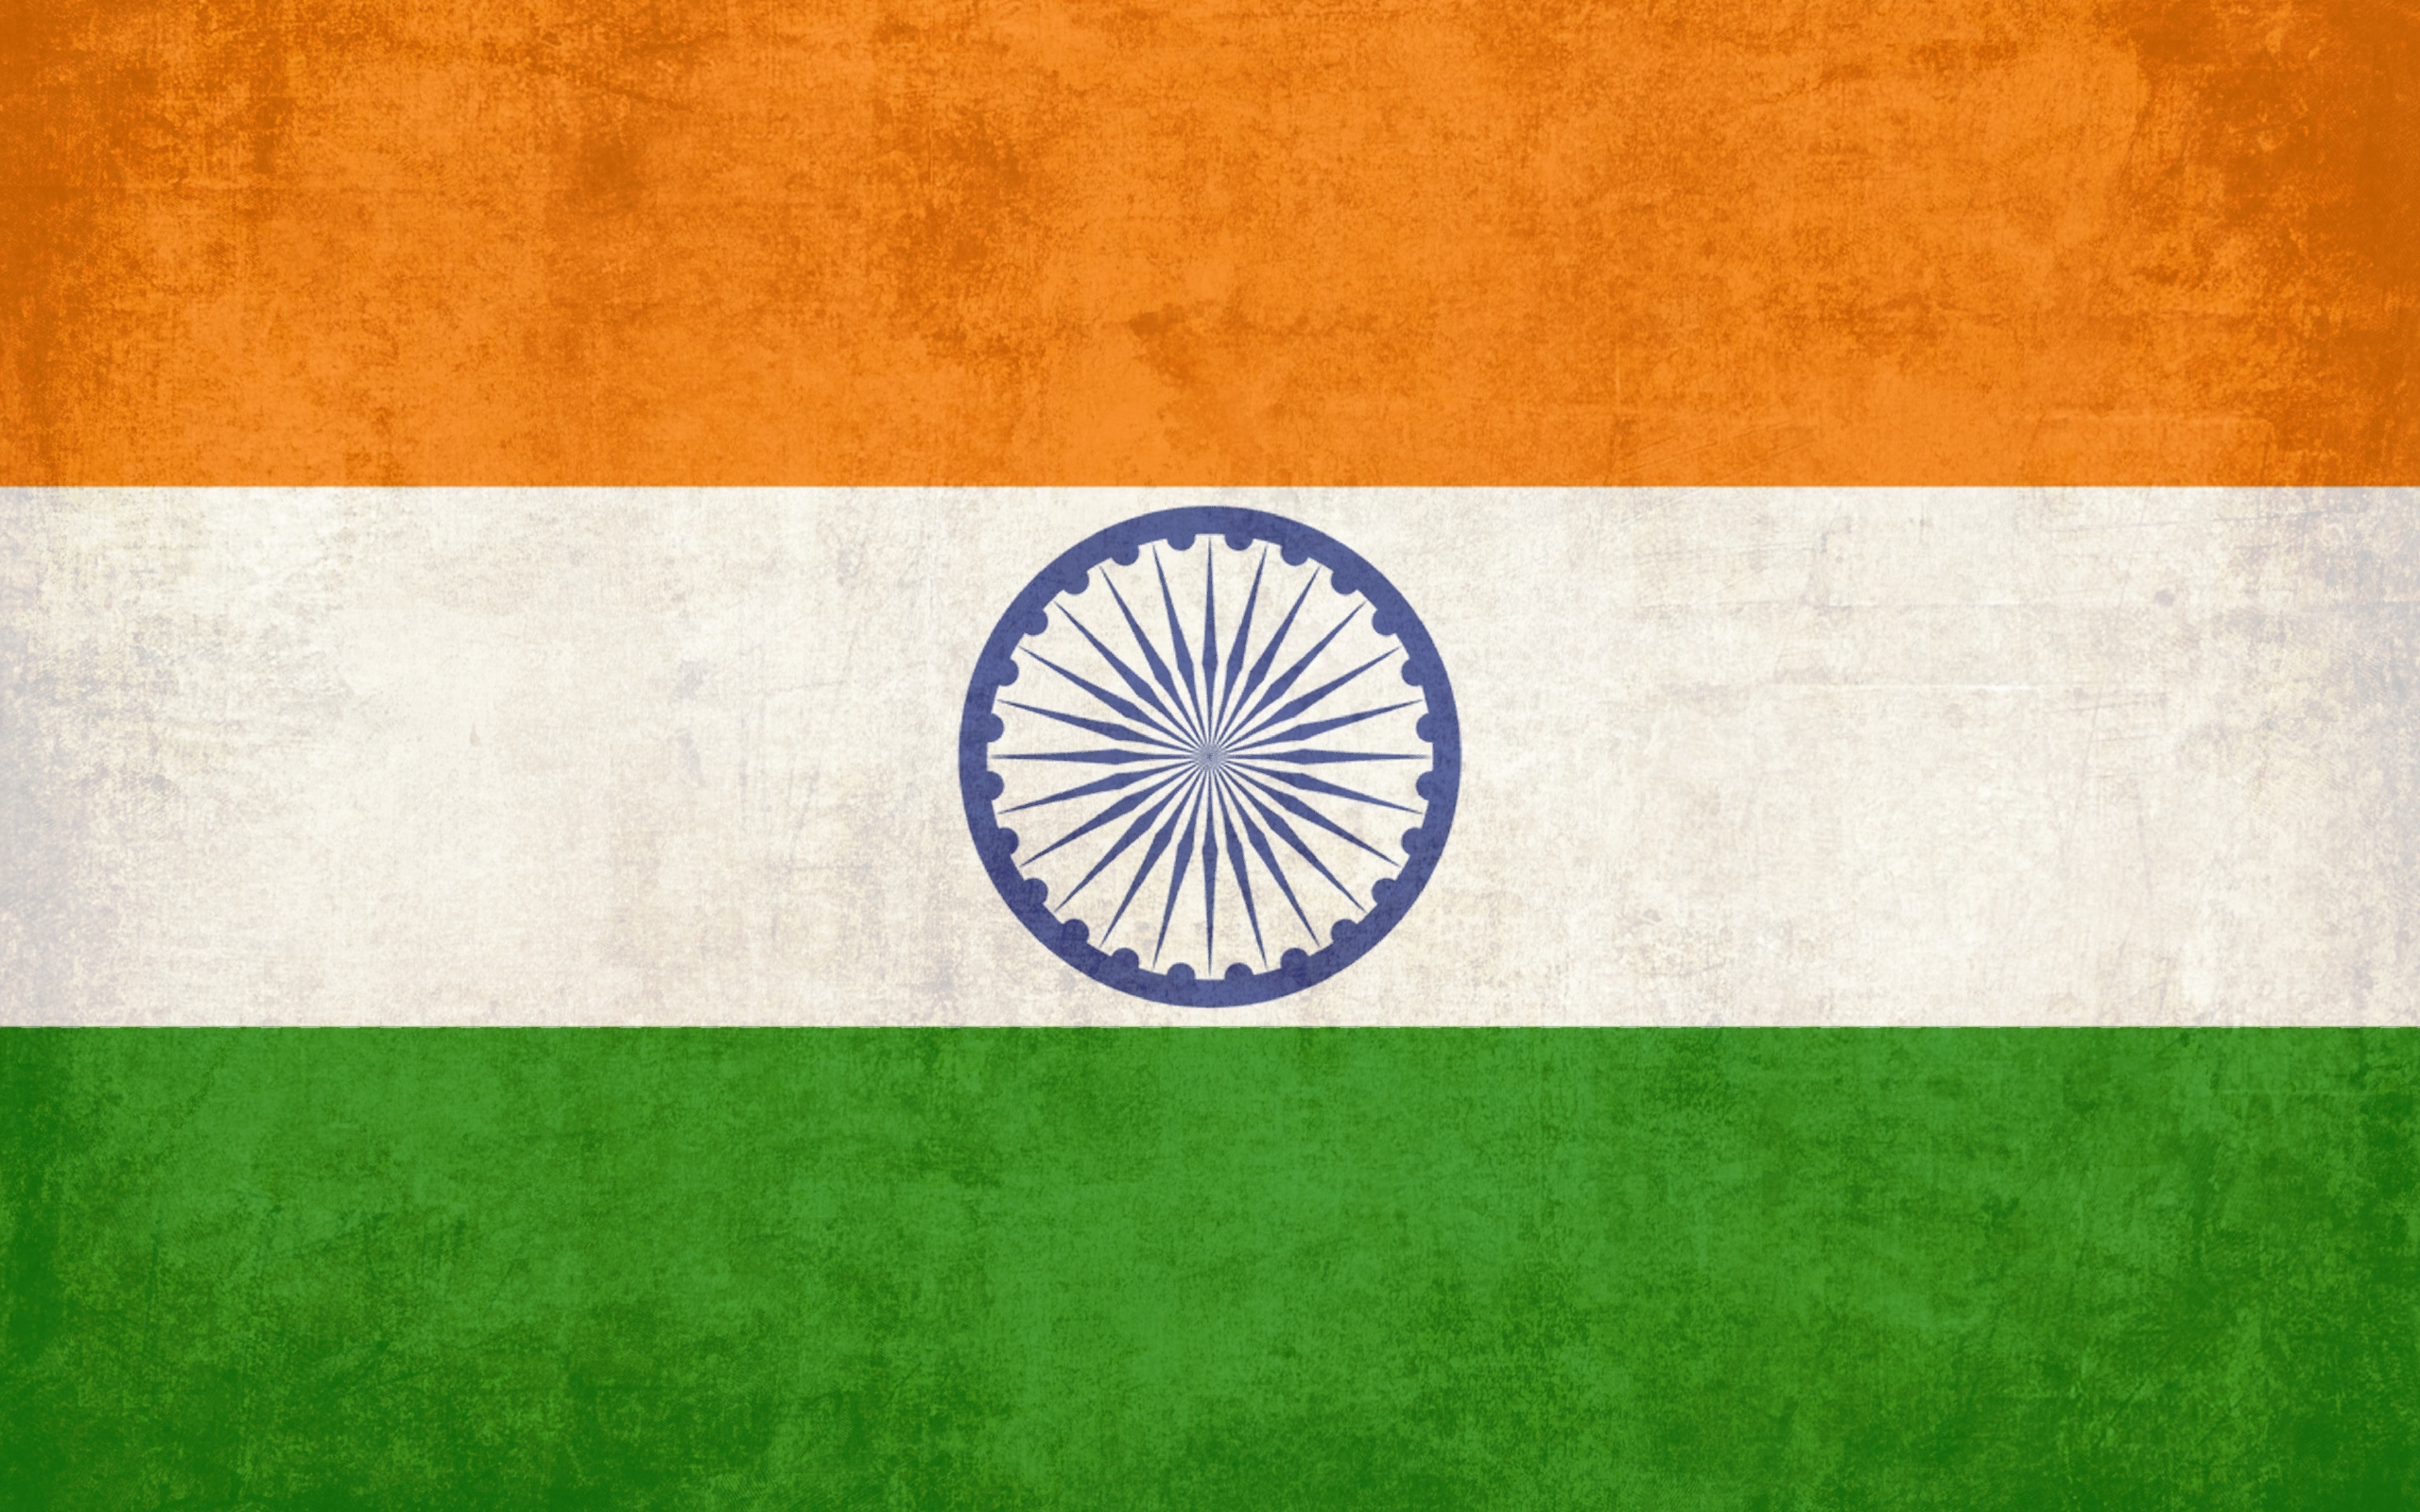 Indian Flag Images Hd720p: DriverLayer Search Engine